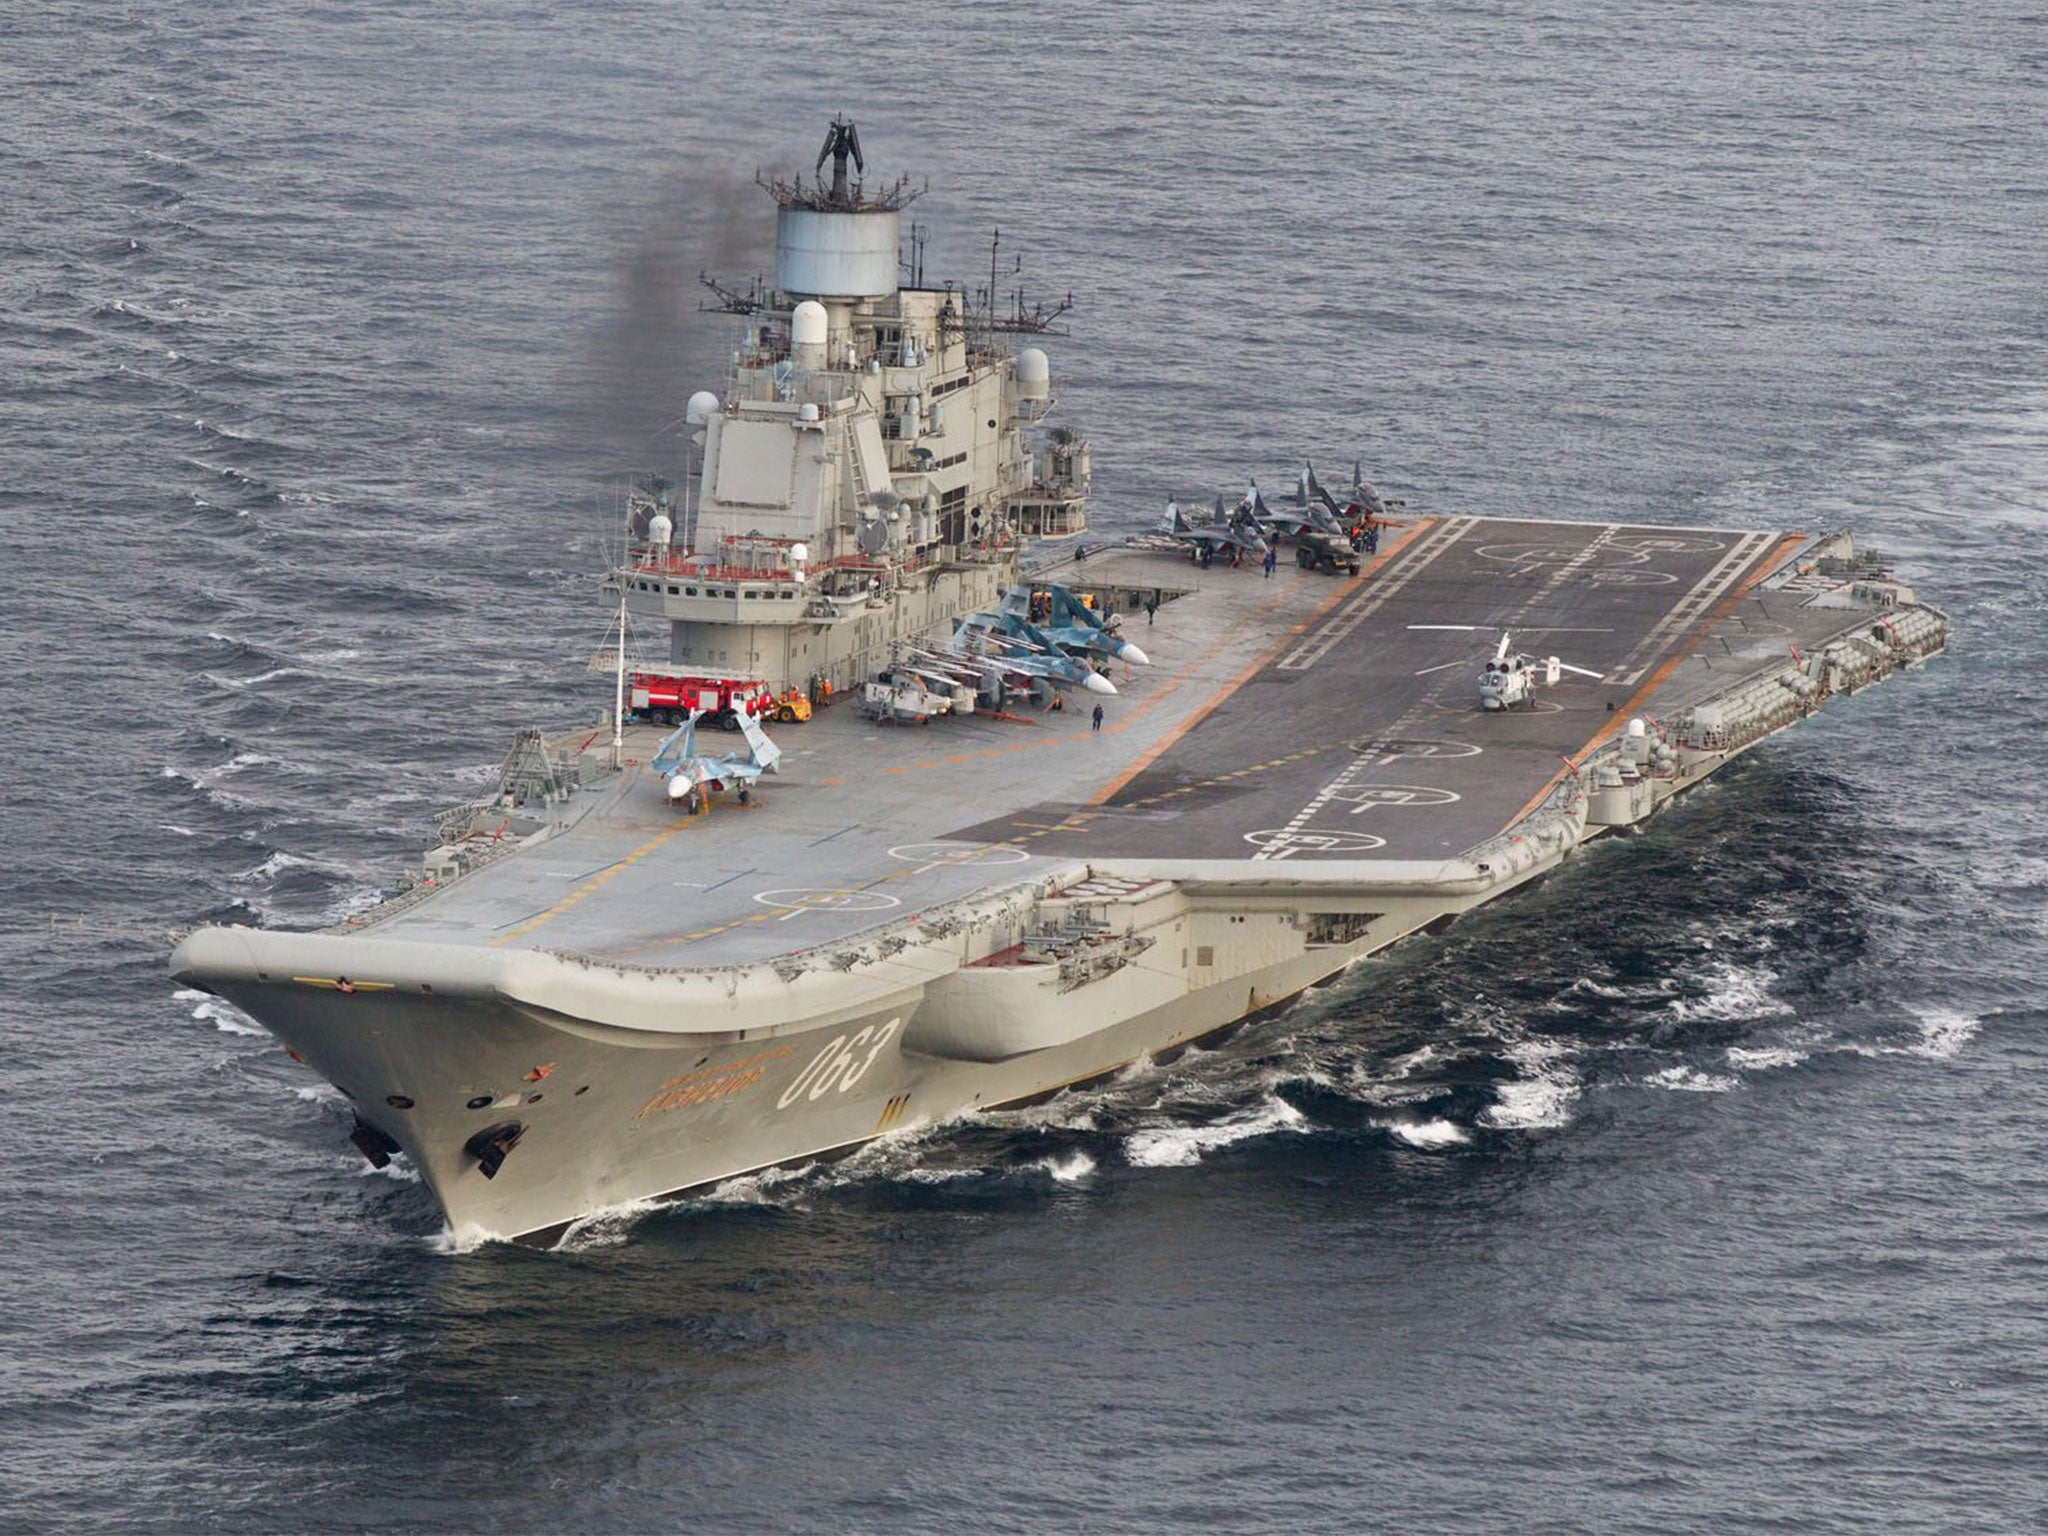 Russia's only aircraft carrier damaged while undergoing